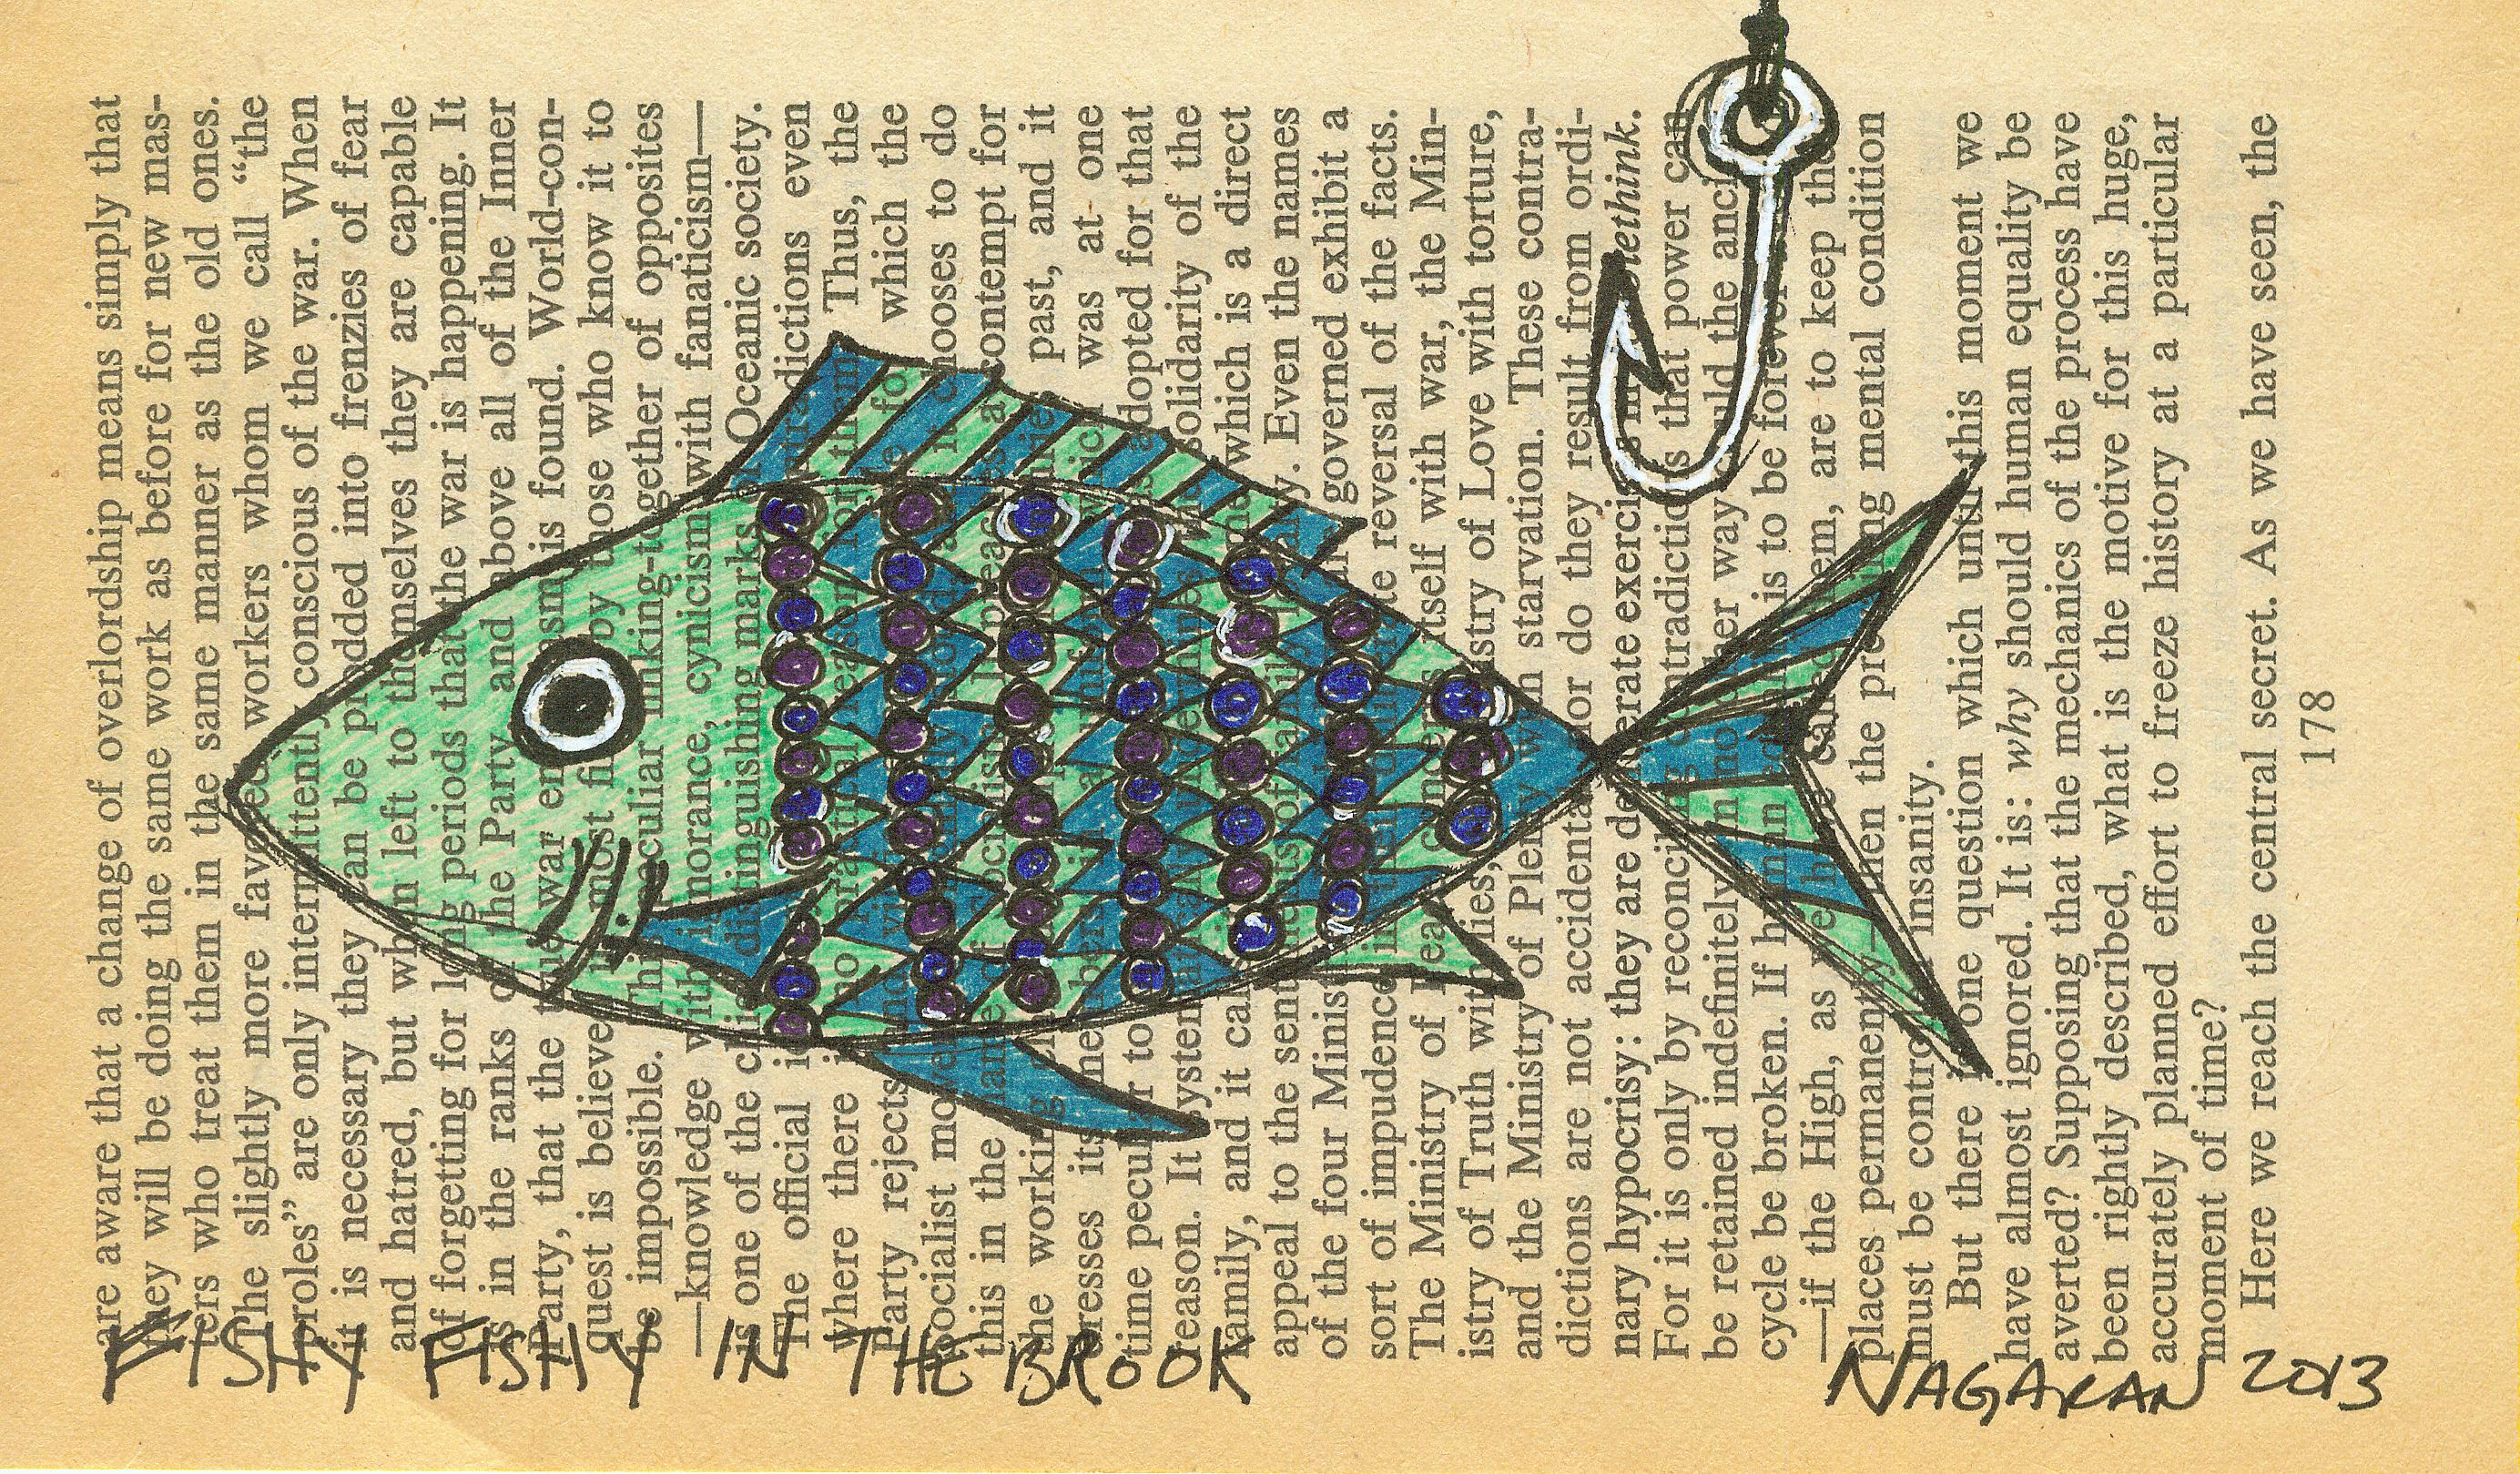 011 fishy fishy in the brook book page 2013